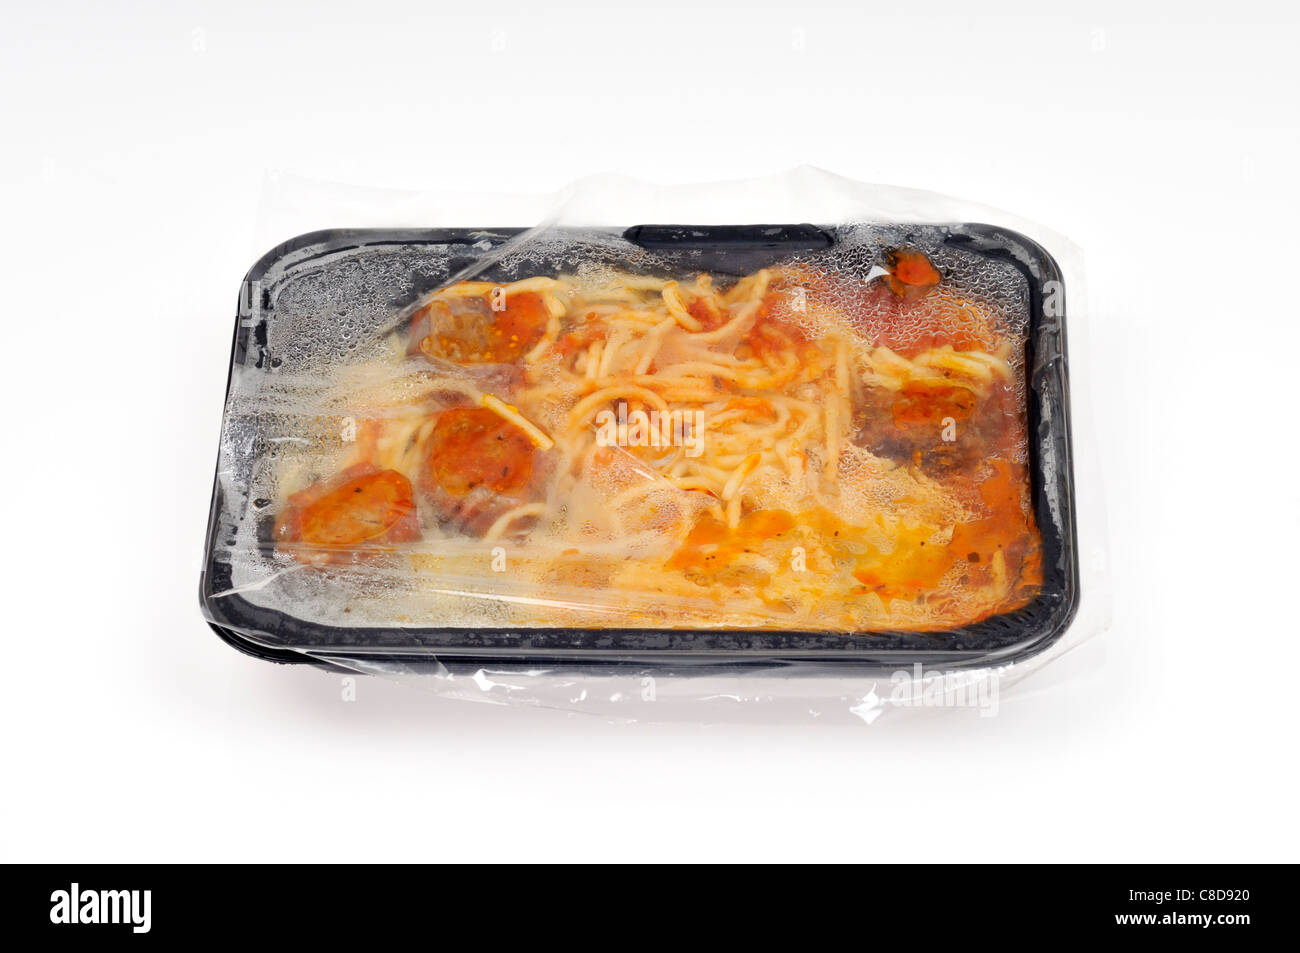 Tray of hot cooked microwave spaghetti and meatballs ready meal with plastic tray & film cover on white background - Stock Image